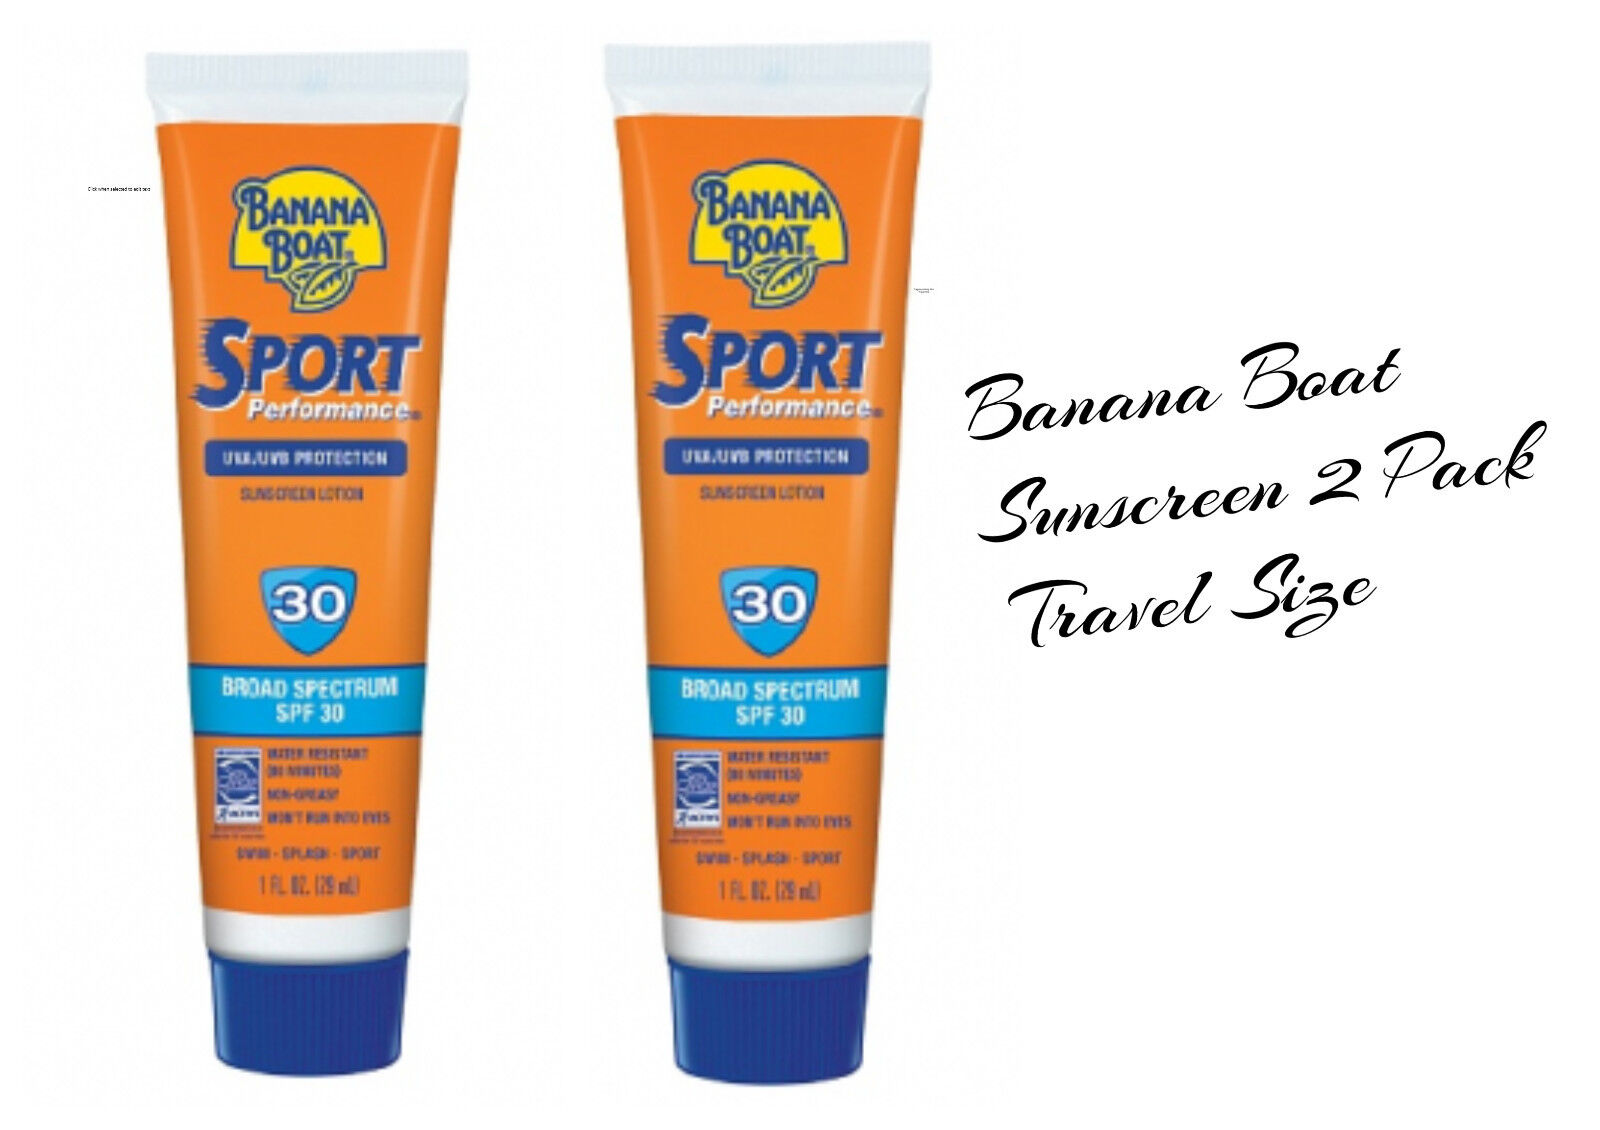 Banana Boat Sport Performance Sunscreen Lotion 1 oz